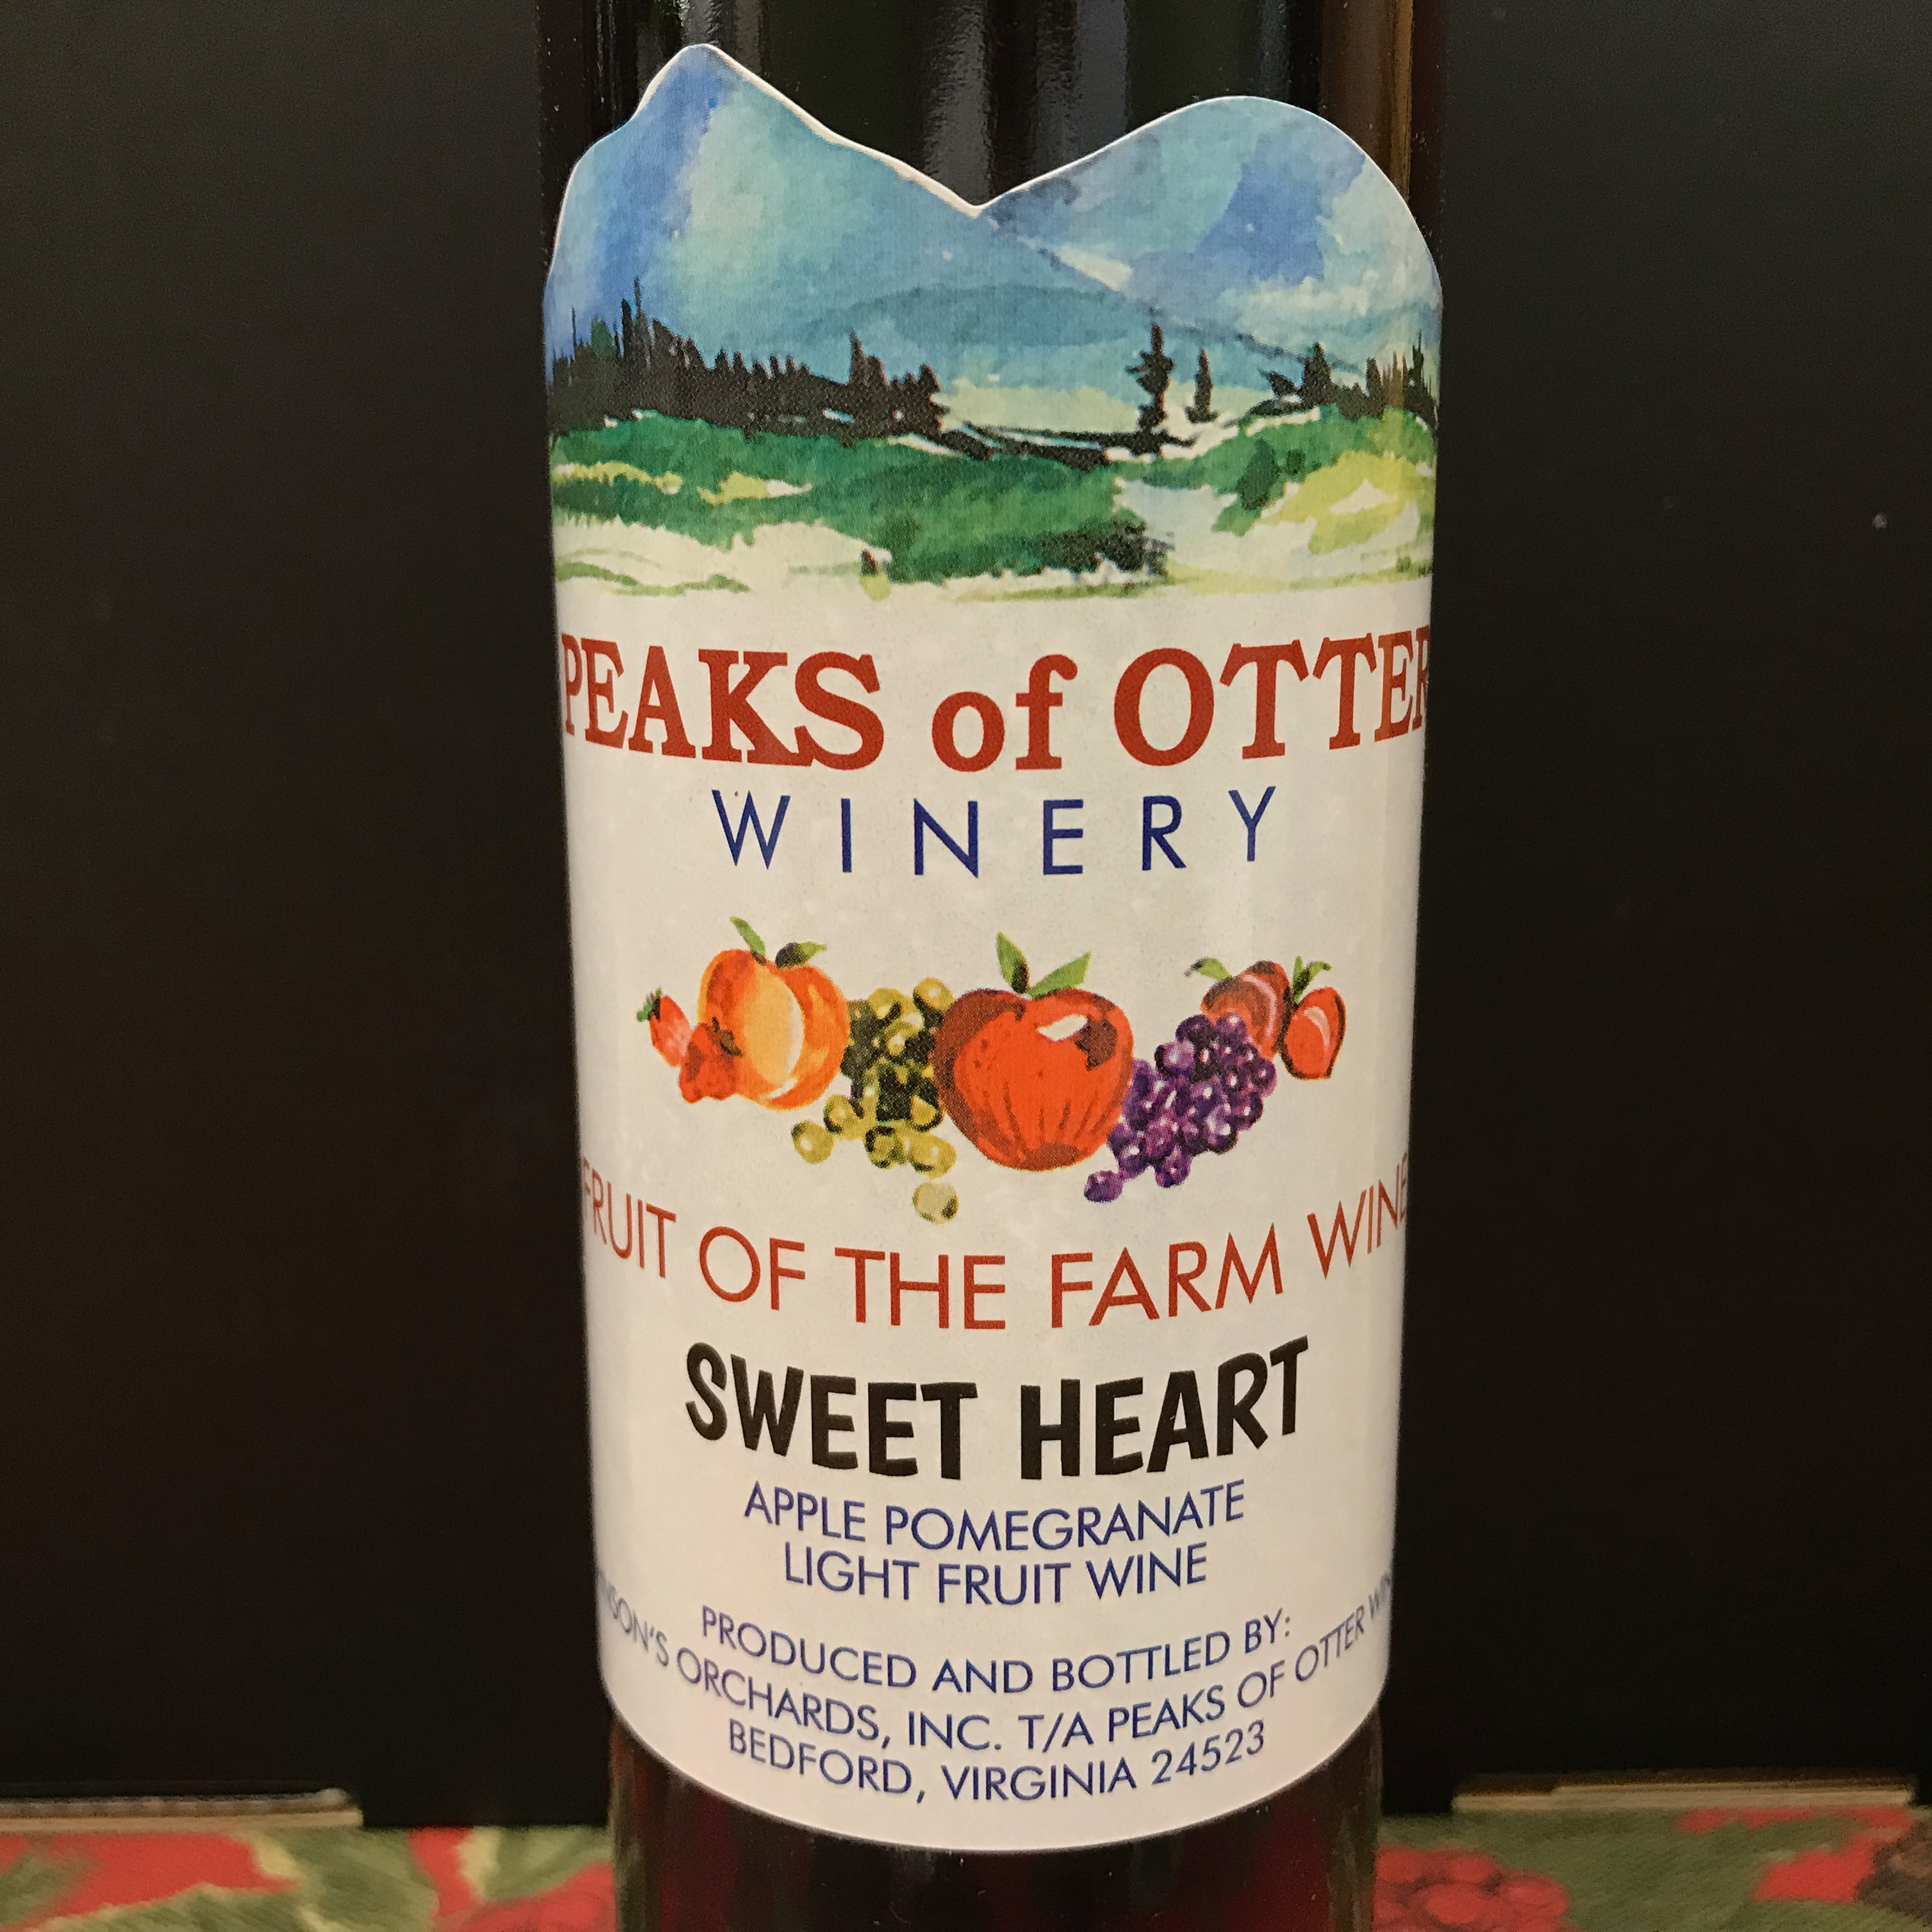 Peaks of Otter Fruit of the Farm Apple Pommegranate wine